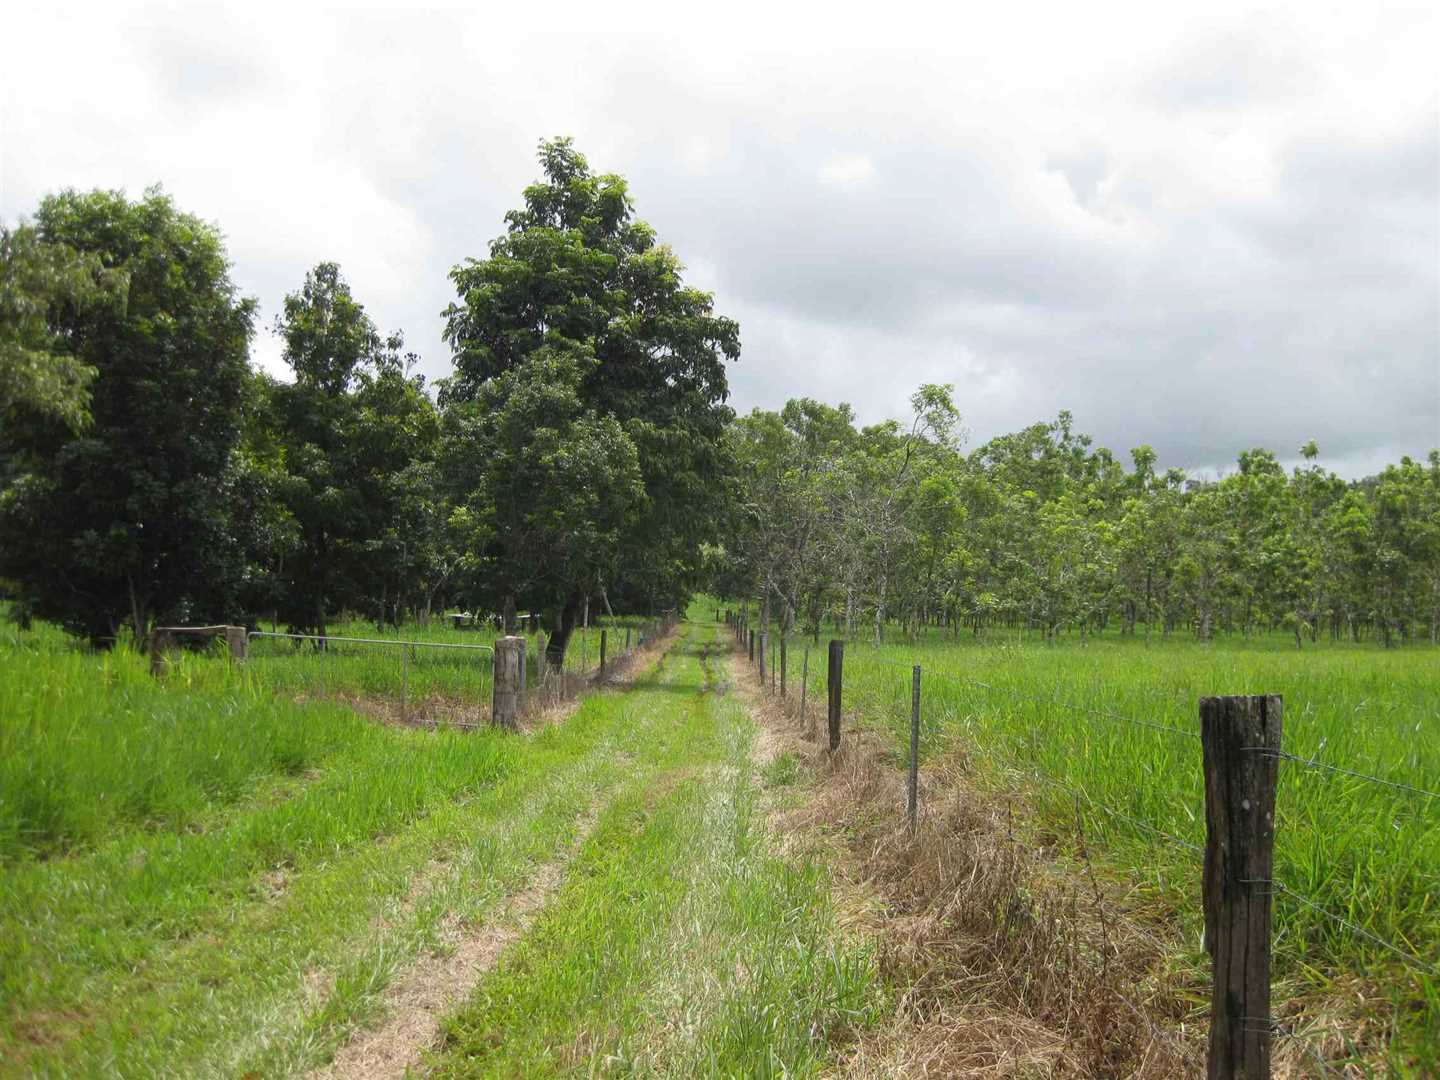 View of part of property showing part of the two fenced paddocks